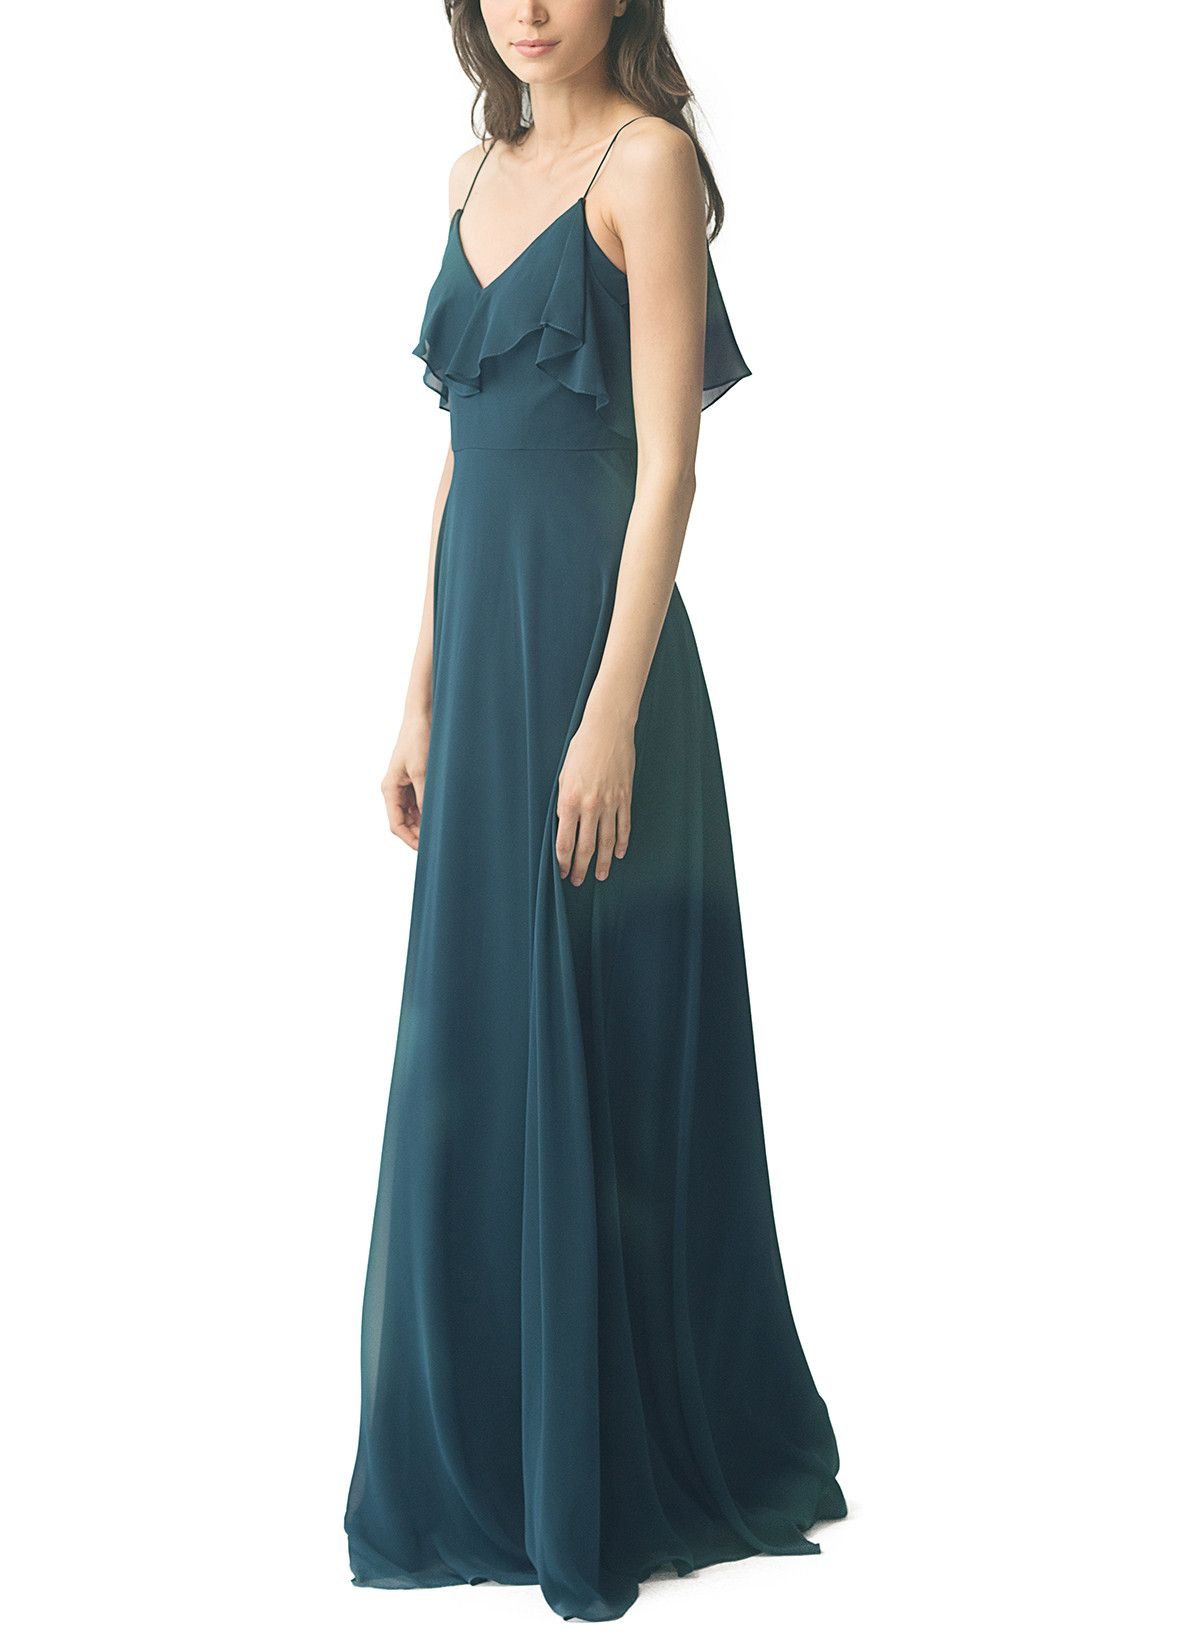 5b568e830fed1 Take a look at this gorgeous Jenny Yoo Mila bridesmaid dress in teal blue  fabric! Available in sizes 0-24 and tons of colors at Brideside.